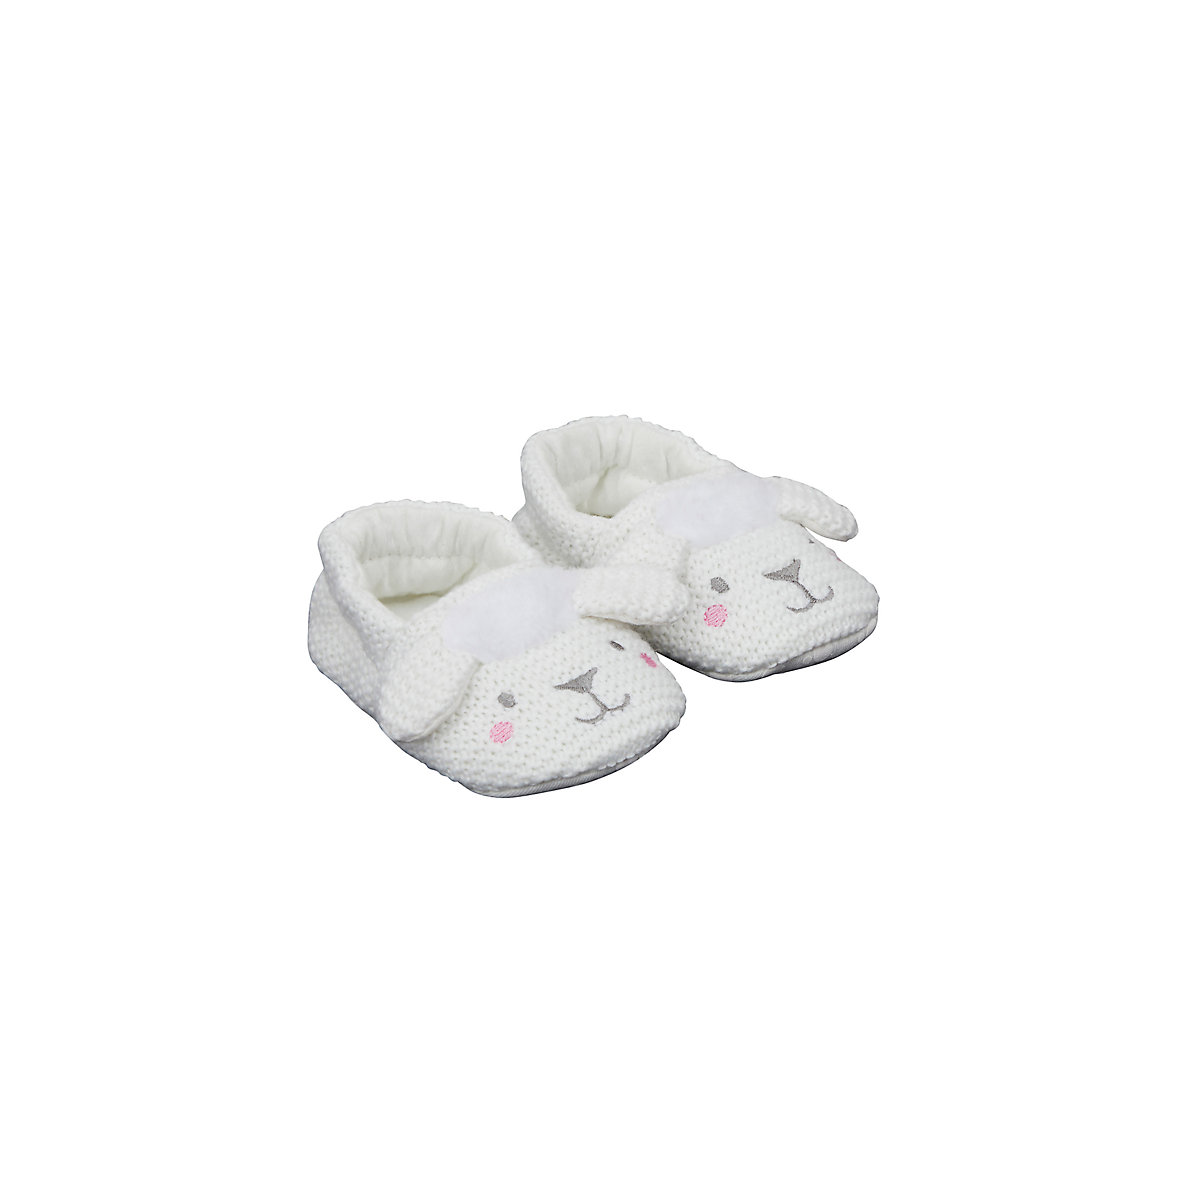 Knitted Sheep Slippers